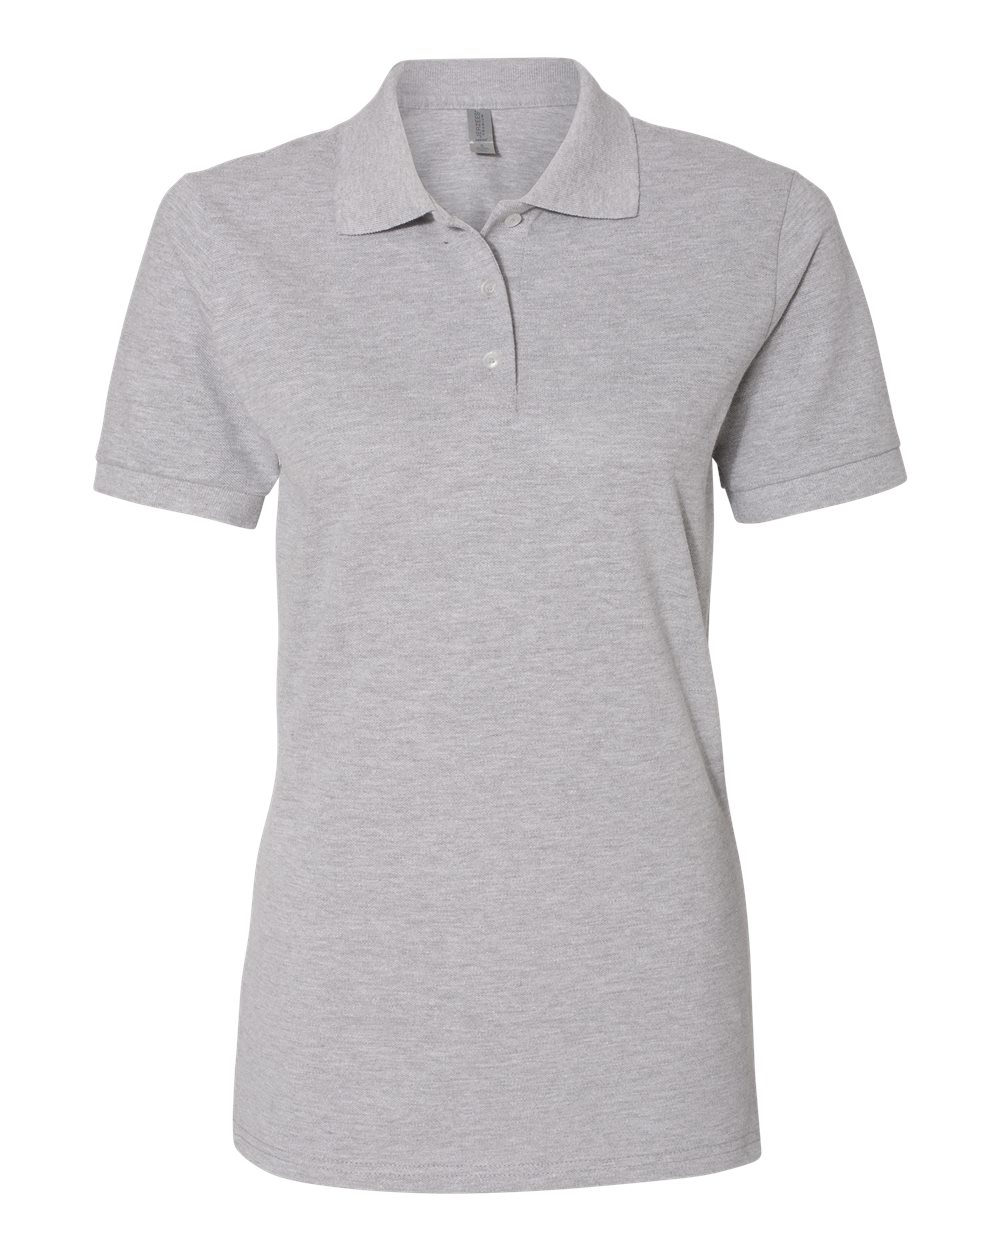 Jerzees-Women-039-s-Easy-Care-Double-Mesh-Ringspun-Pique-Polo-Sport-Shirt-443W thumbnail 5